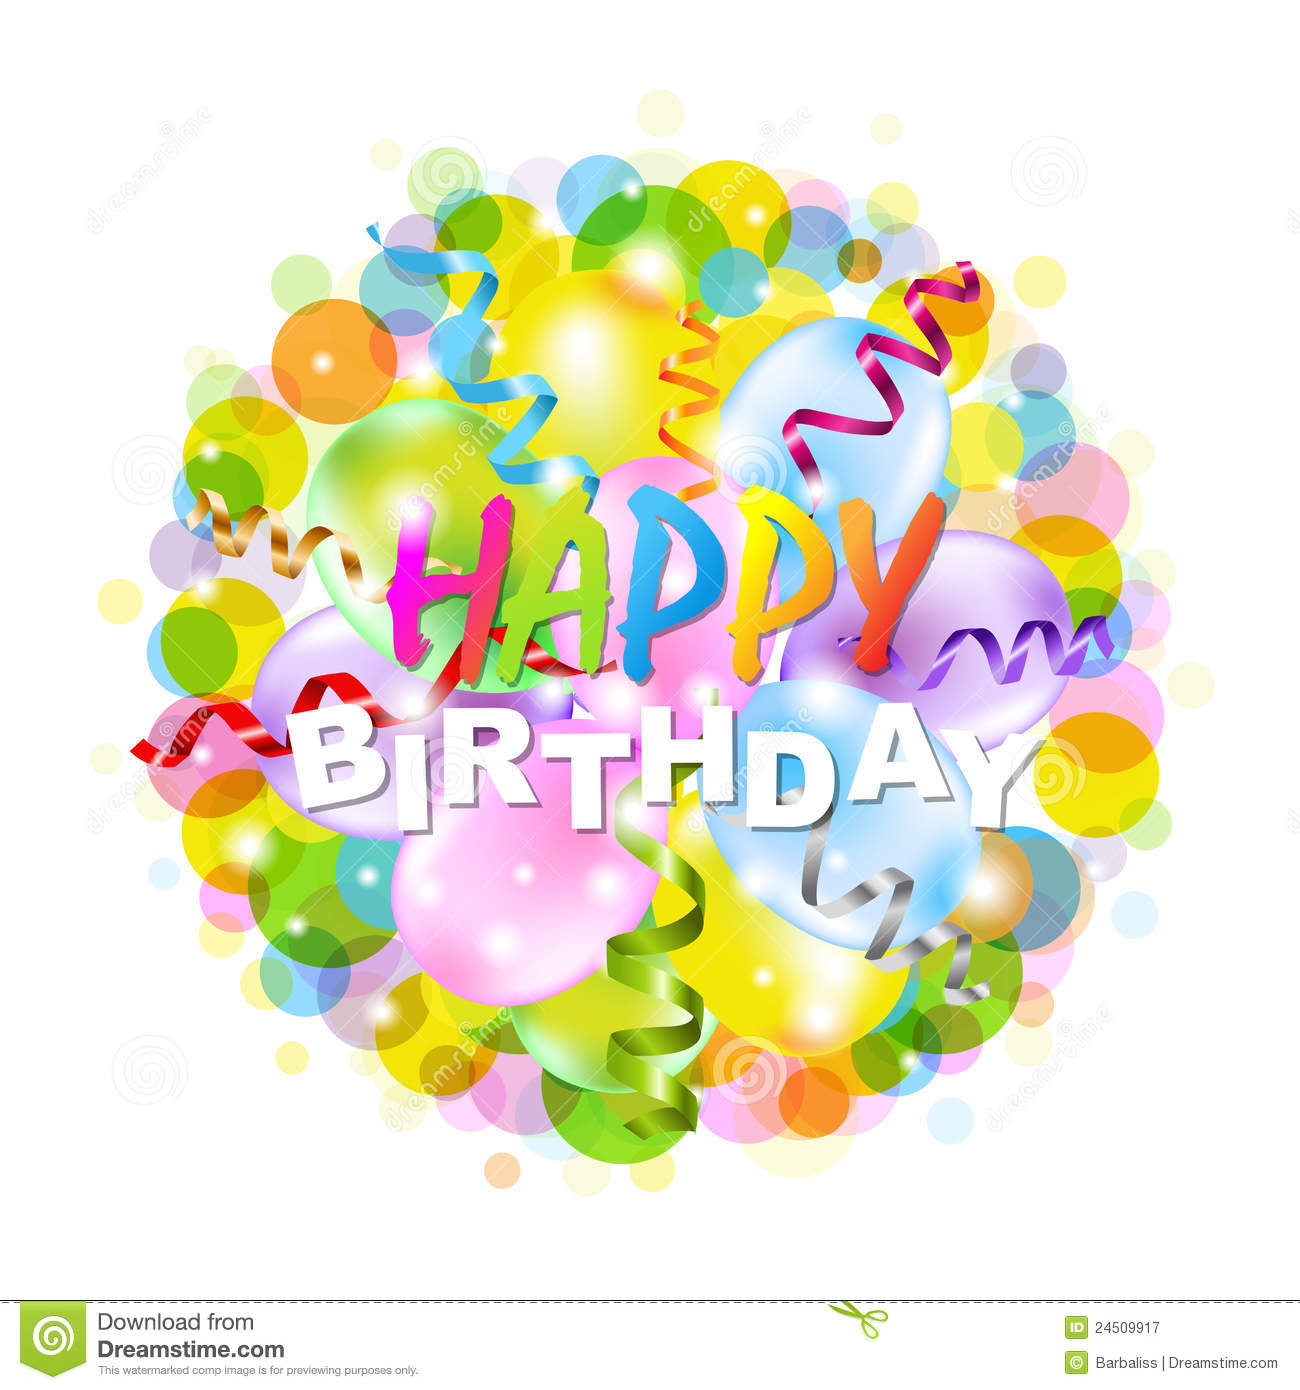 birthday posters free download ; happy-birthday-poster-bokeh-24509917